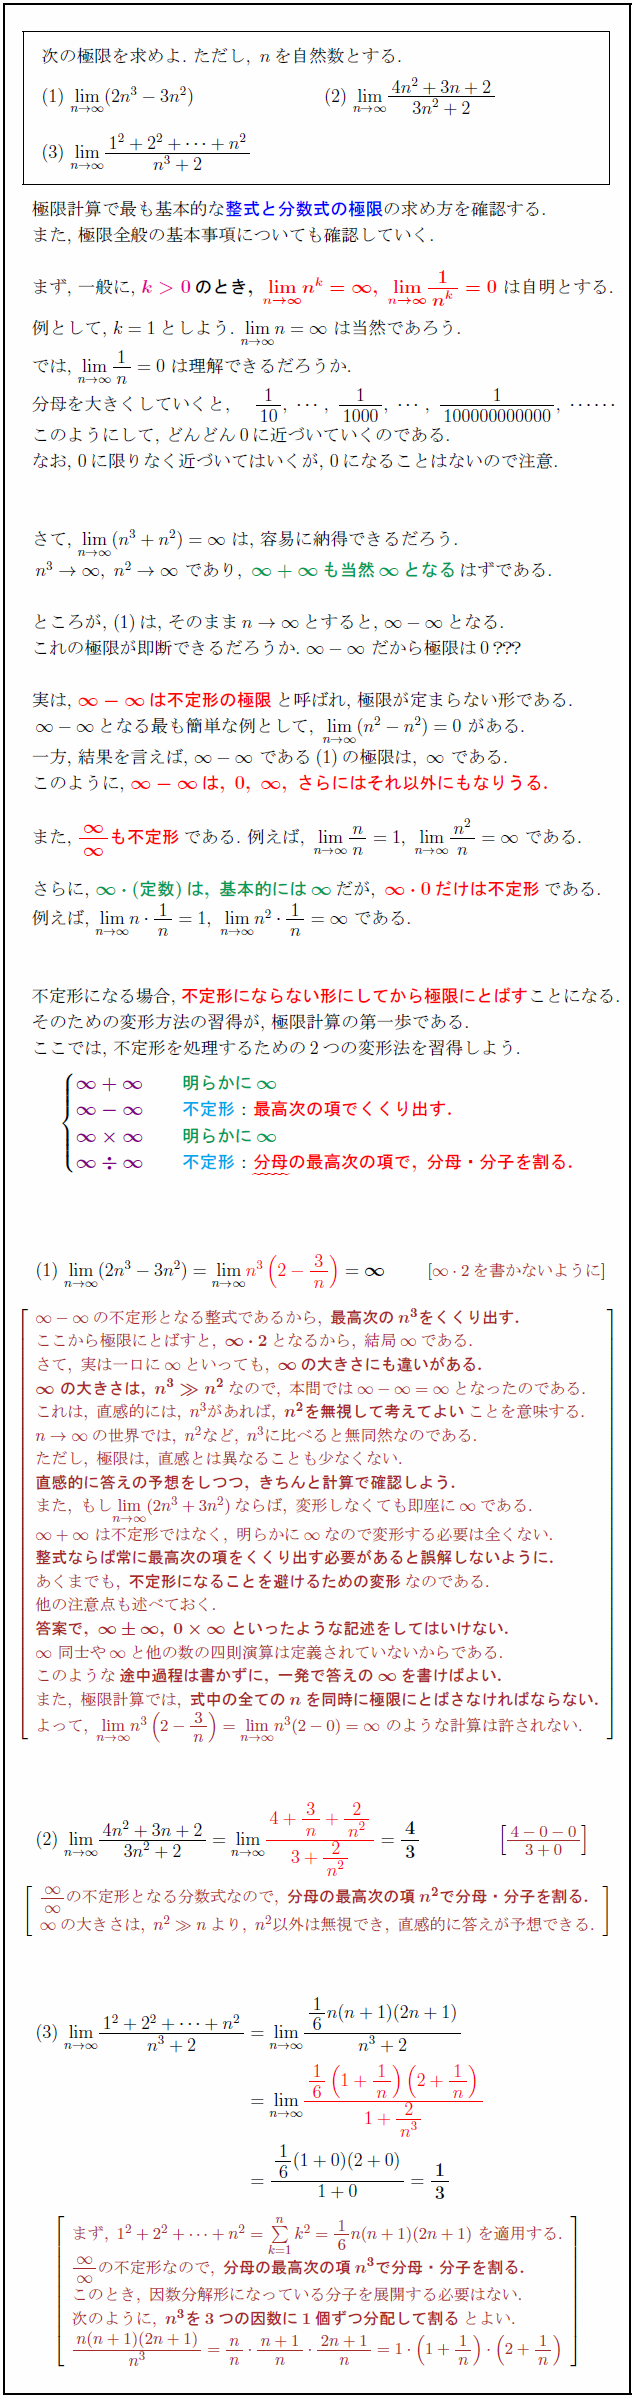 integral-expression